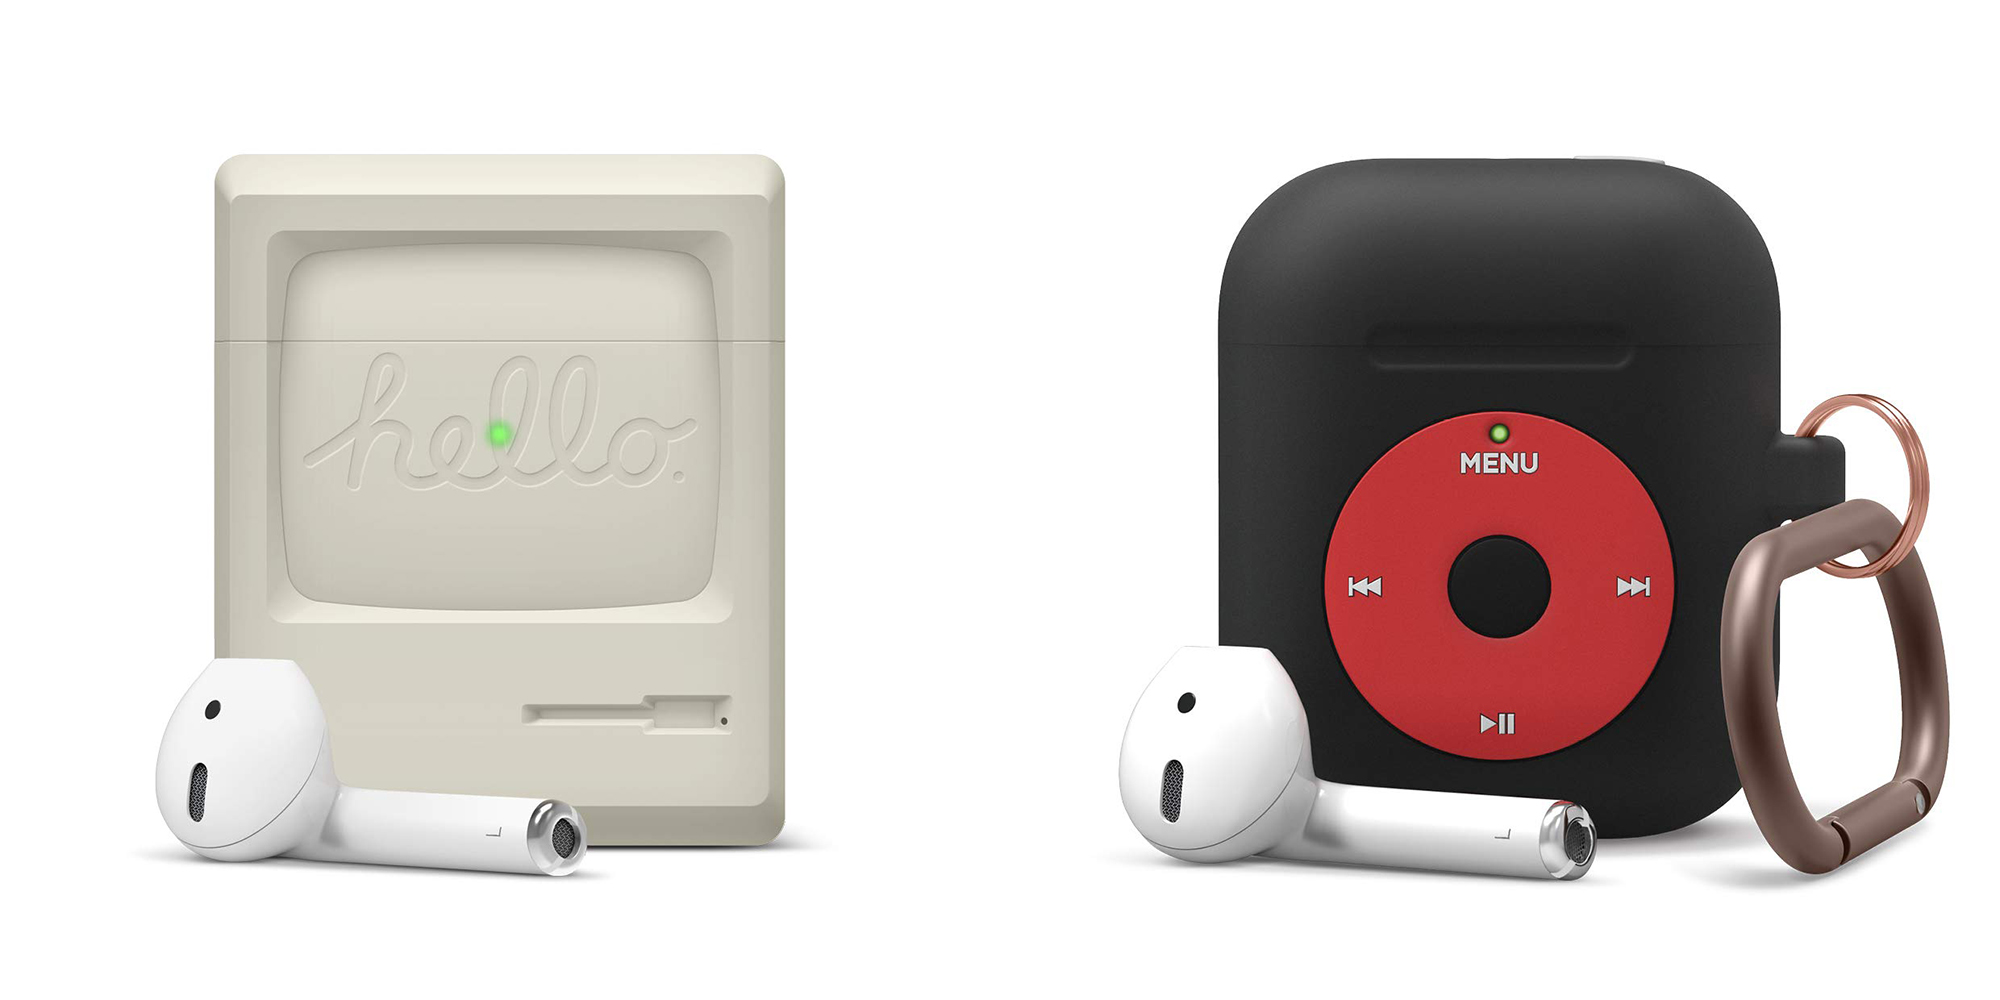 elago's latest vintage-inspired AirPods cases are on sale from $9 - 9to5Toys